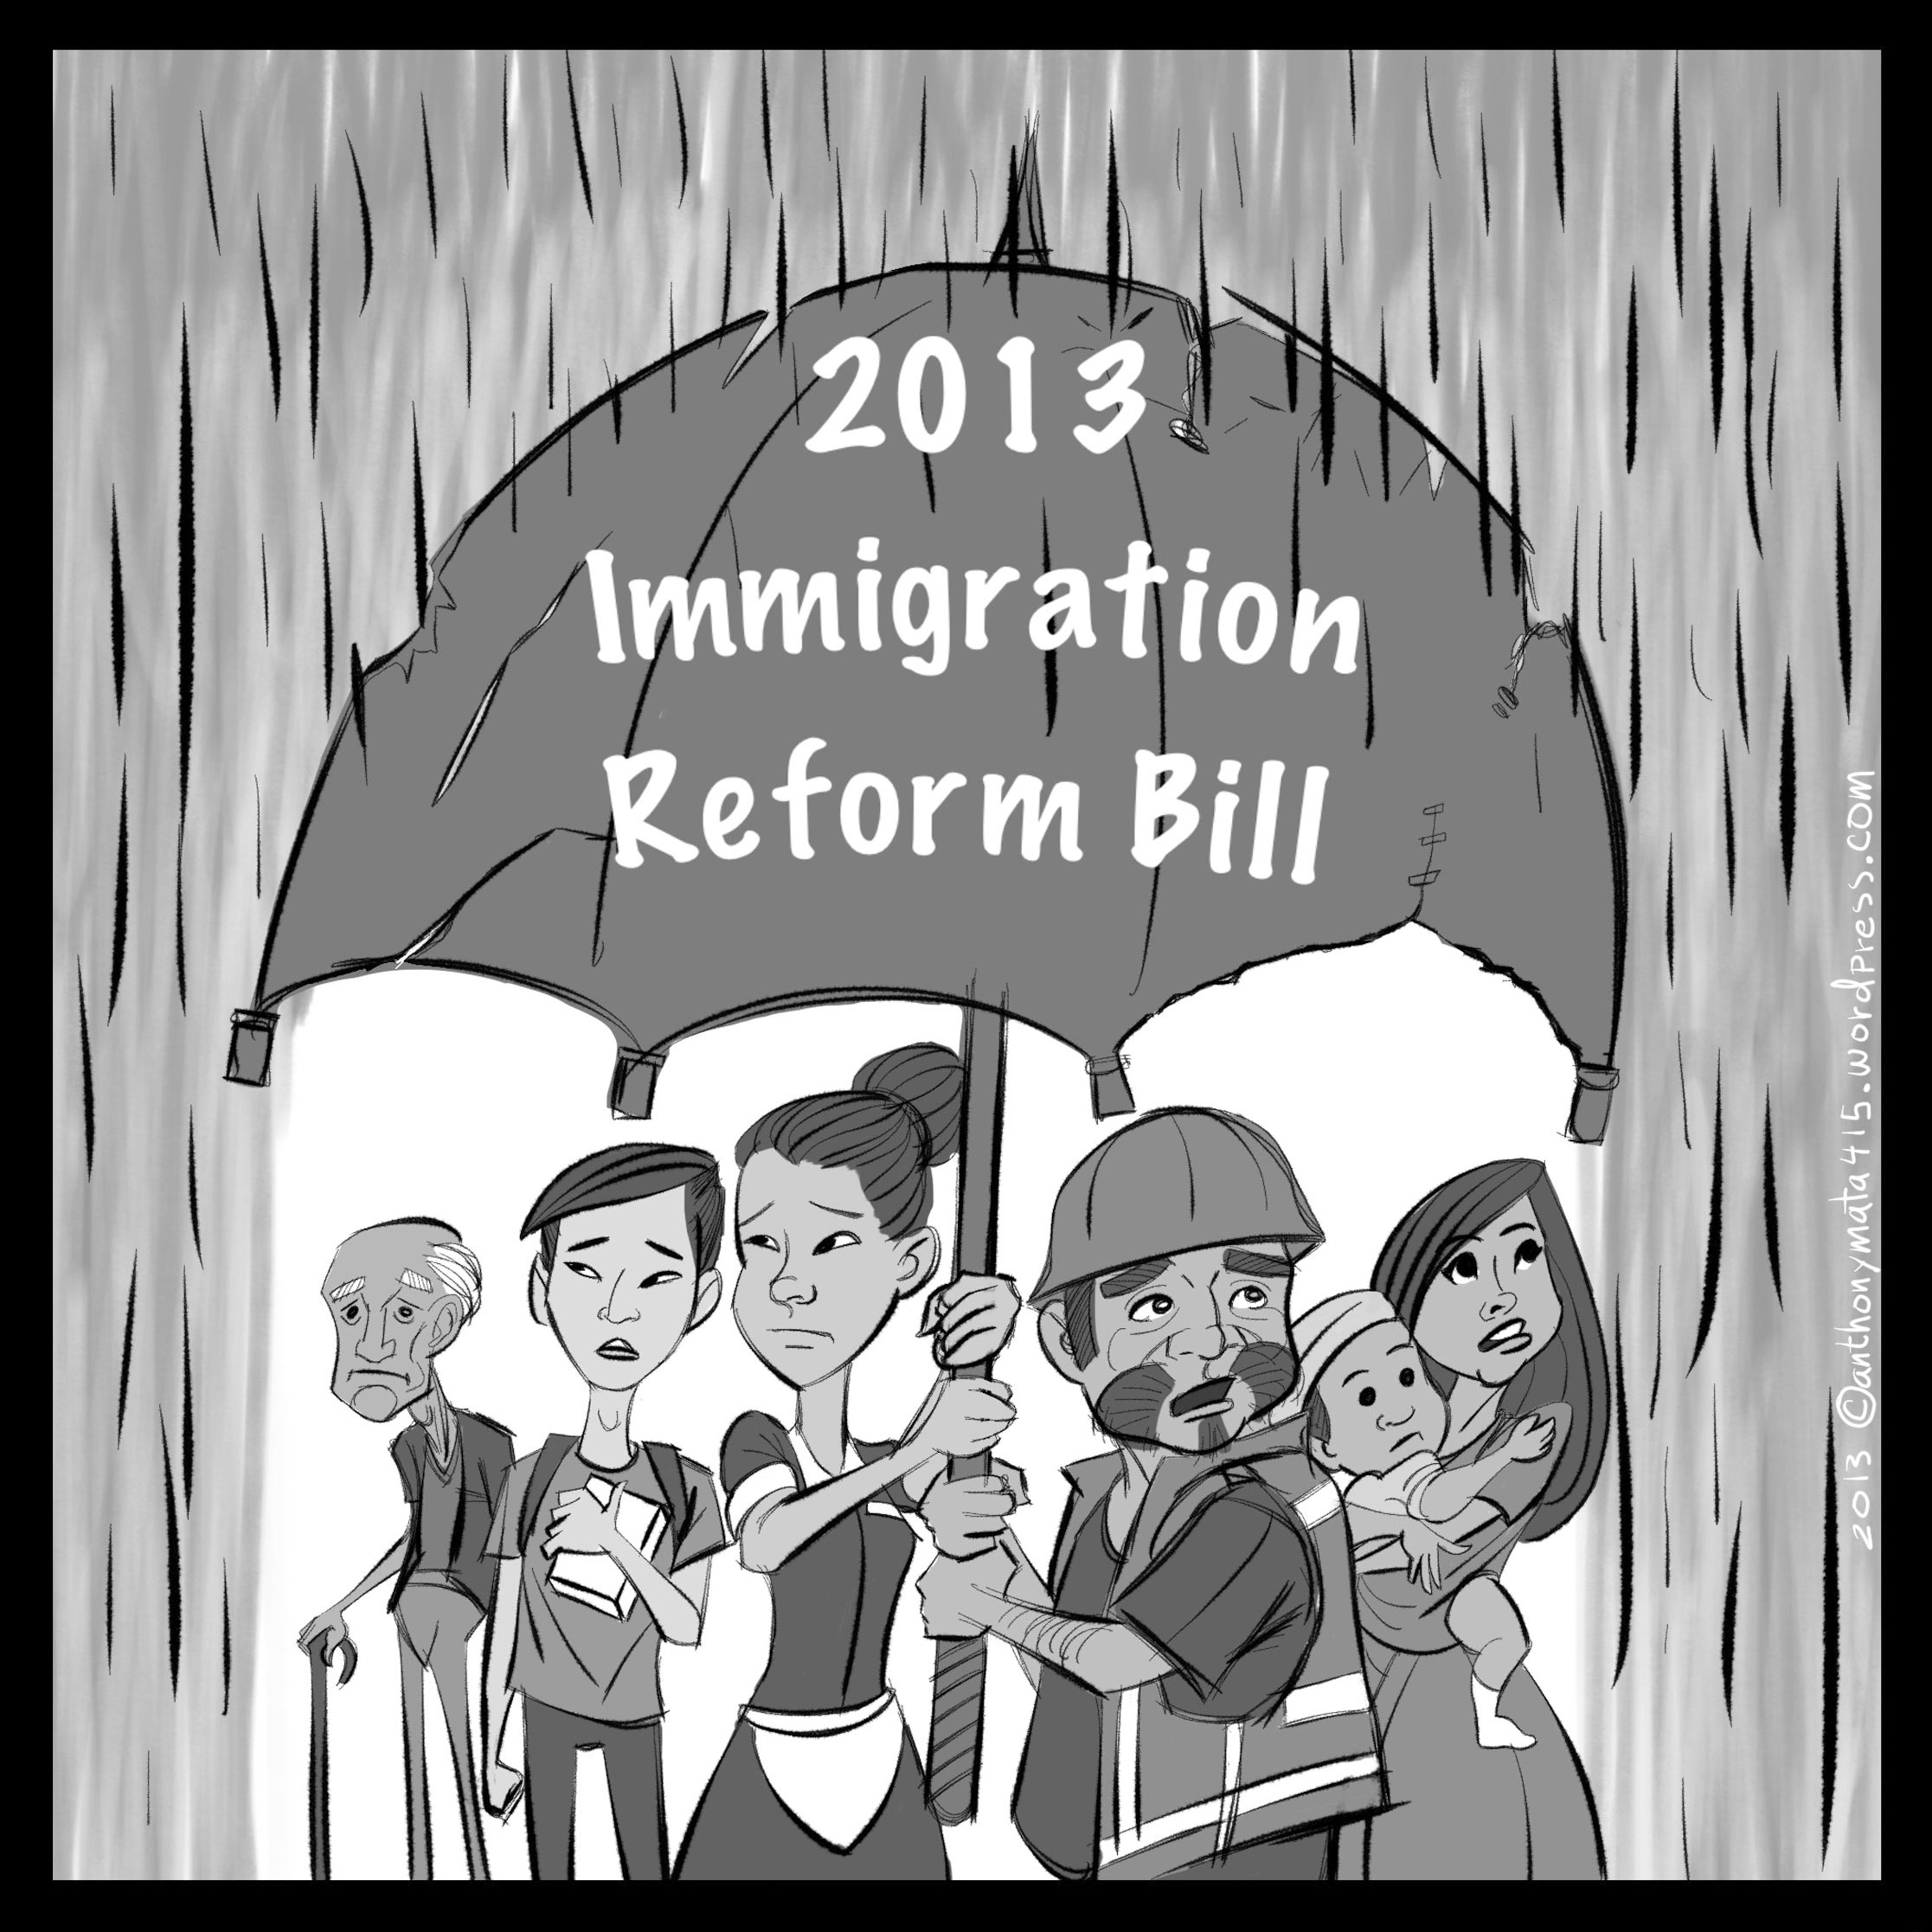 Latest News About Immigration Reform 2013: Local Groups Discuss Pressing Immigration Reform